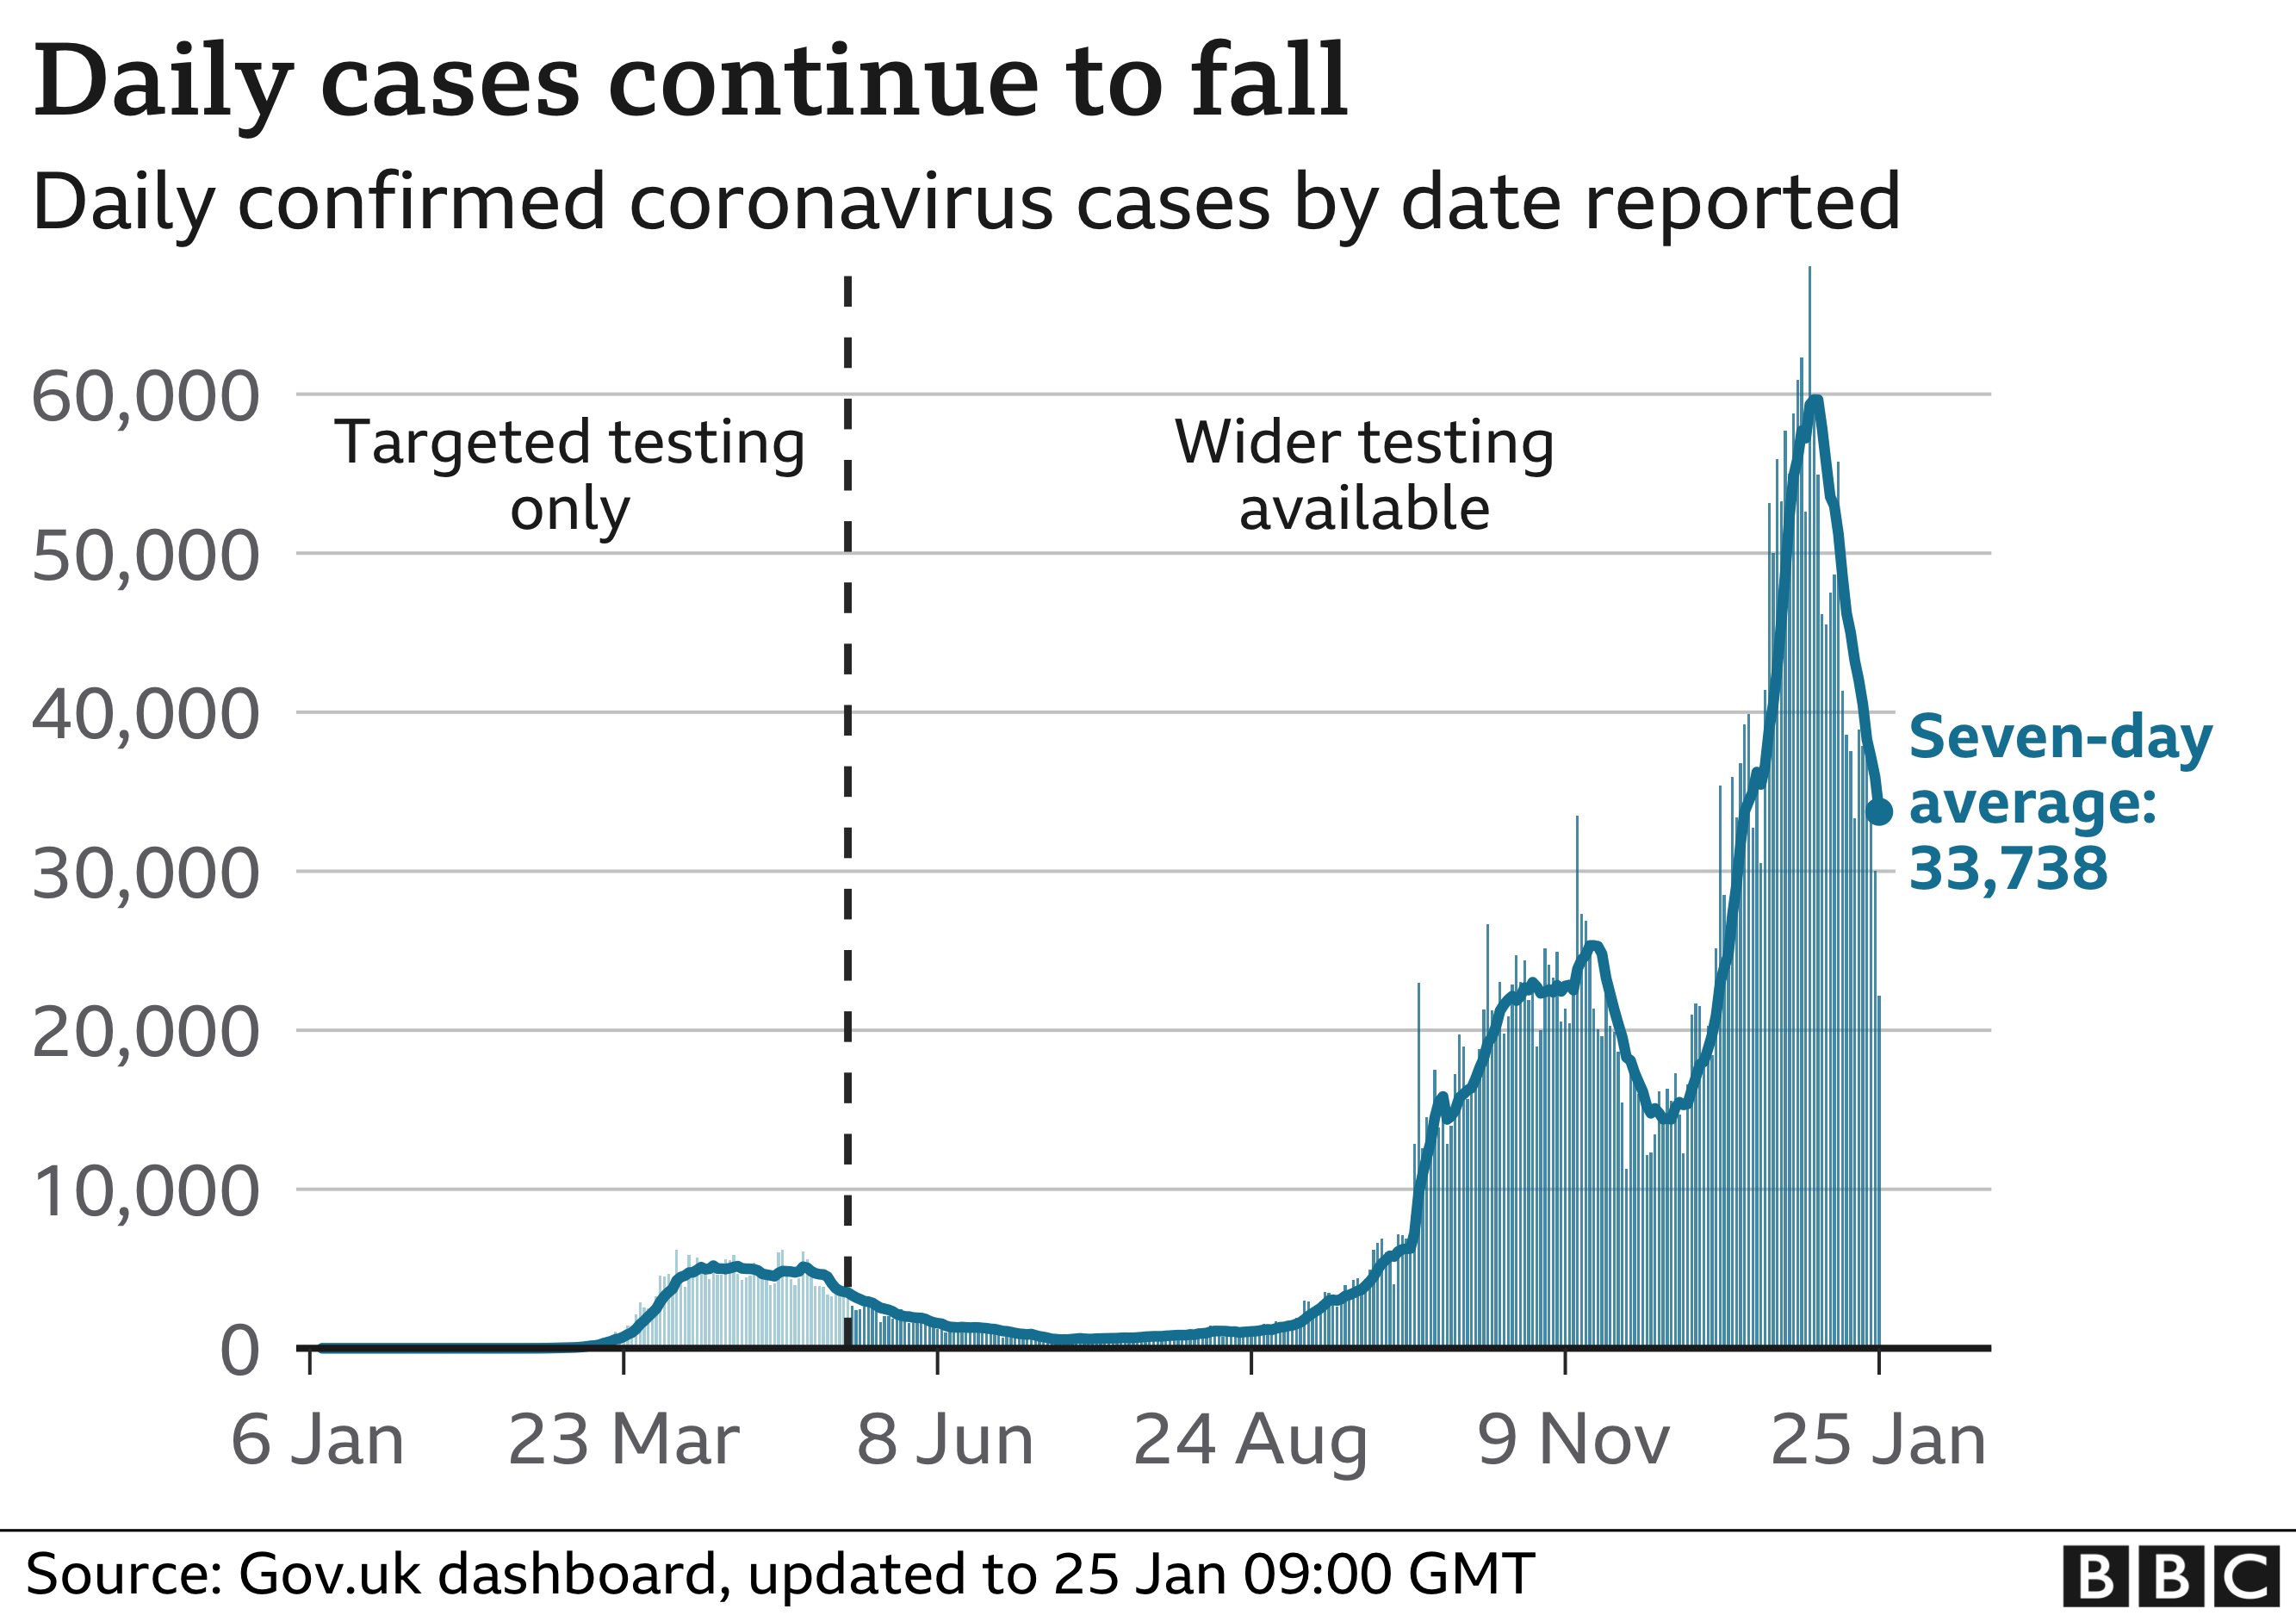 Chart showing daily cases continuing to fall